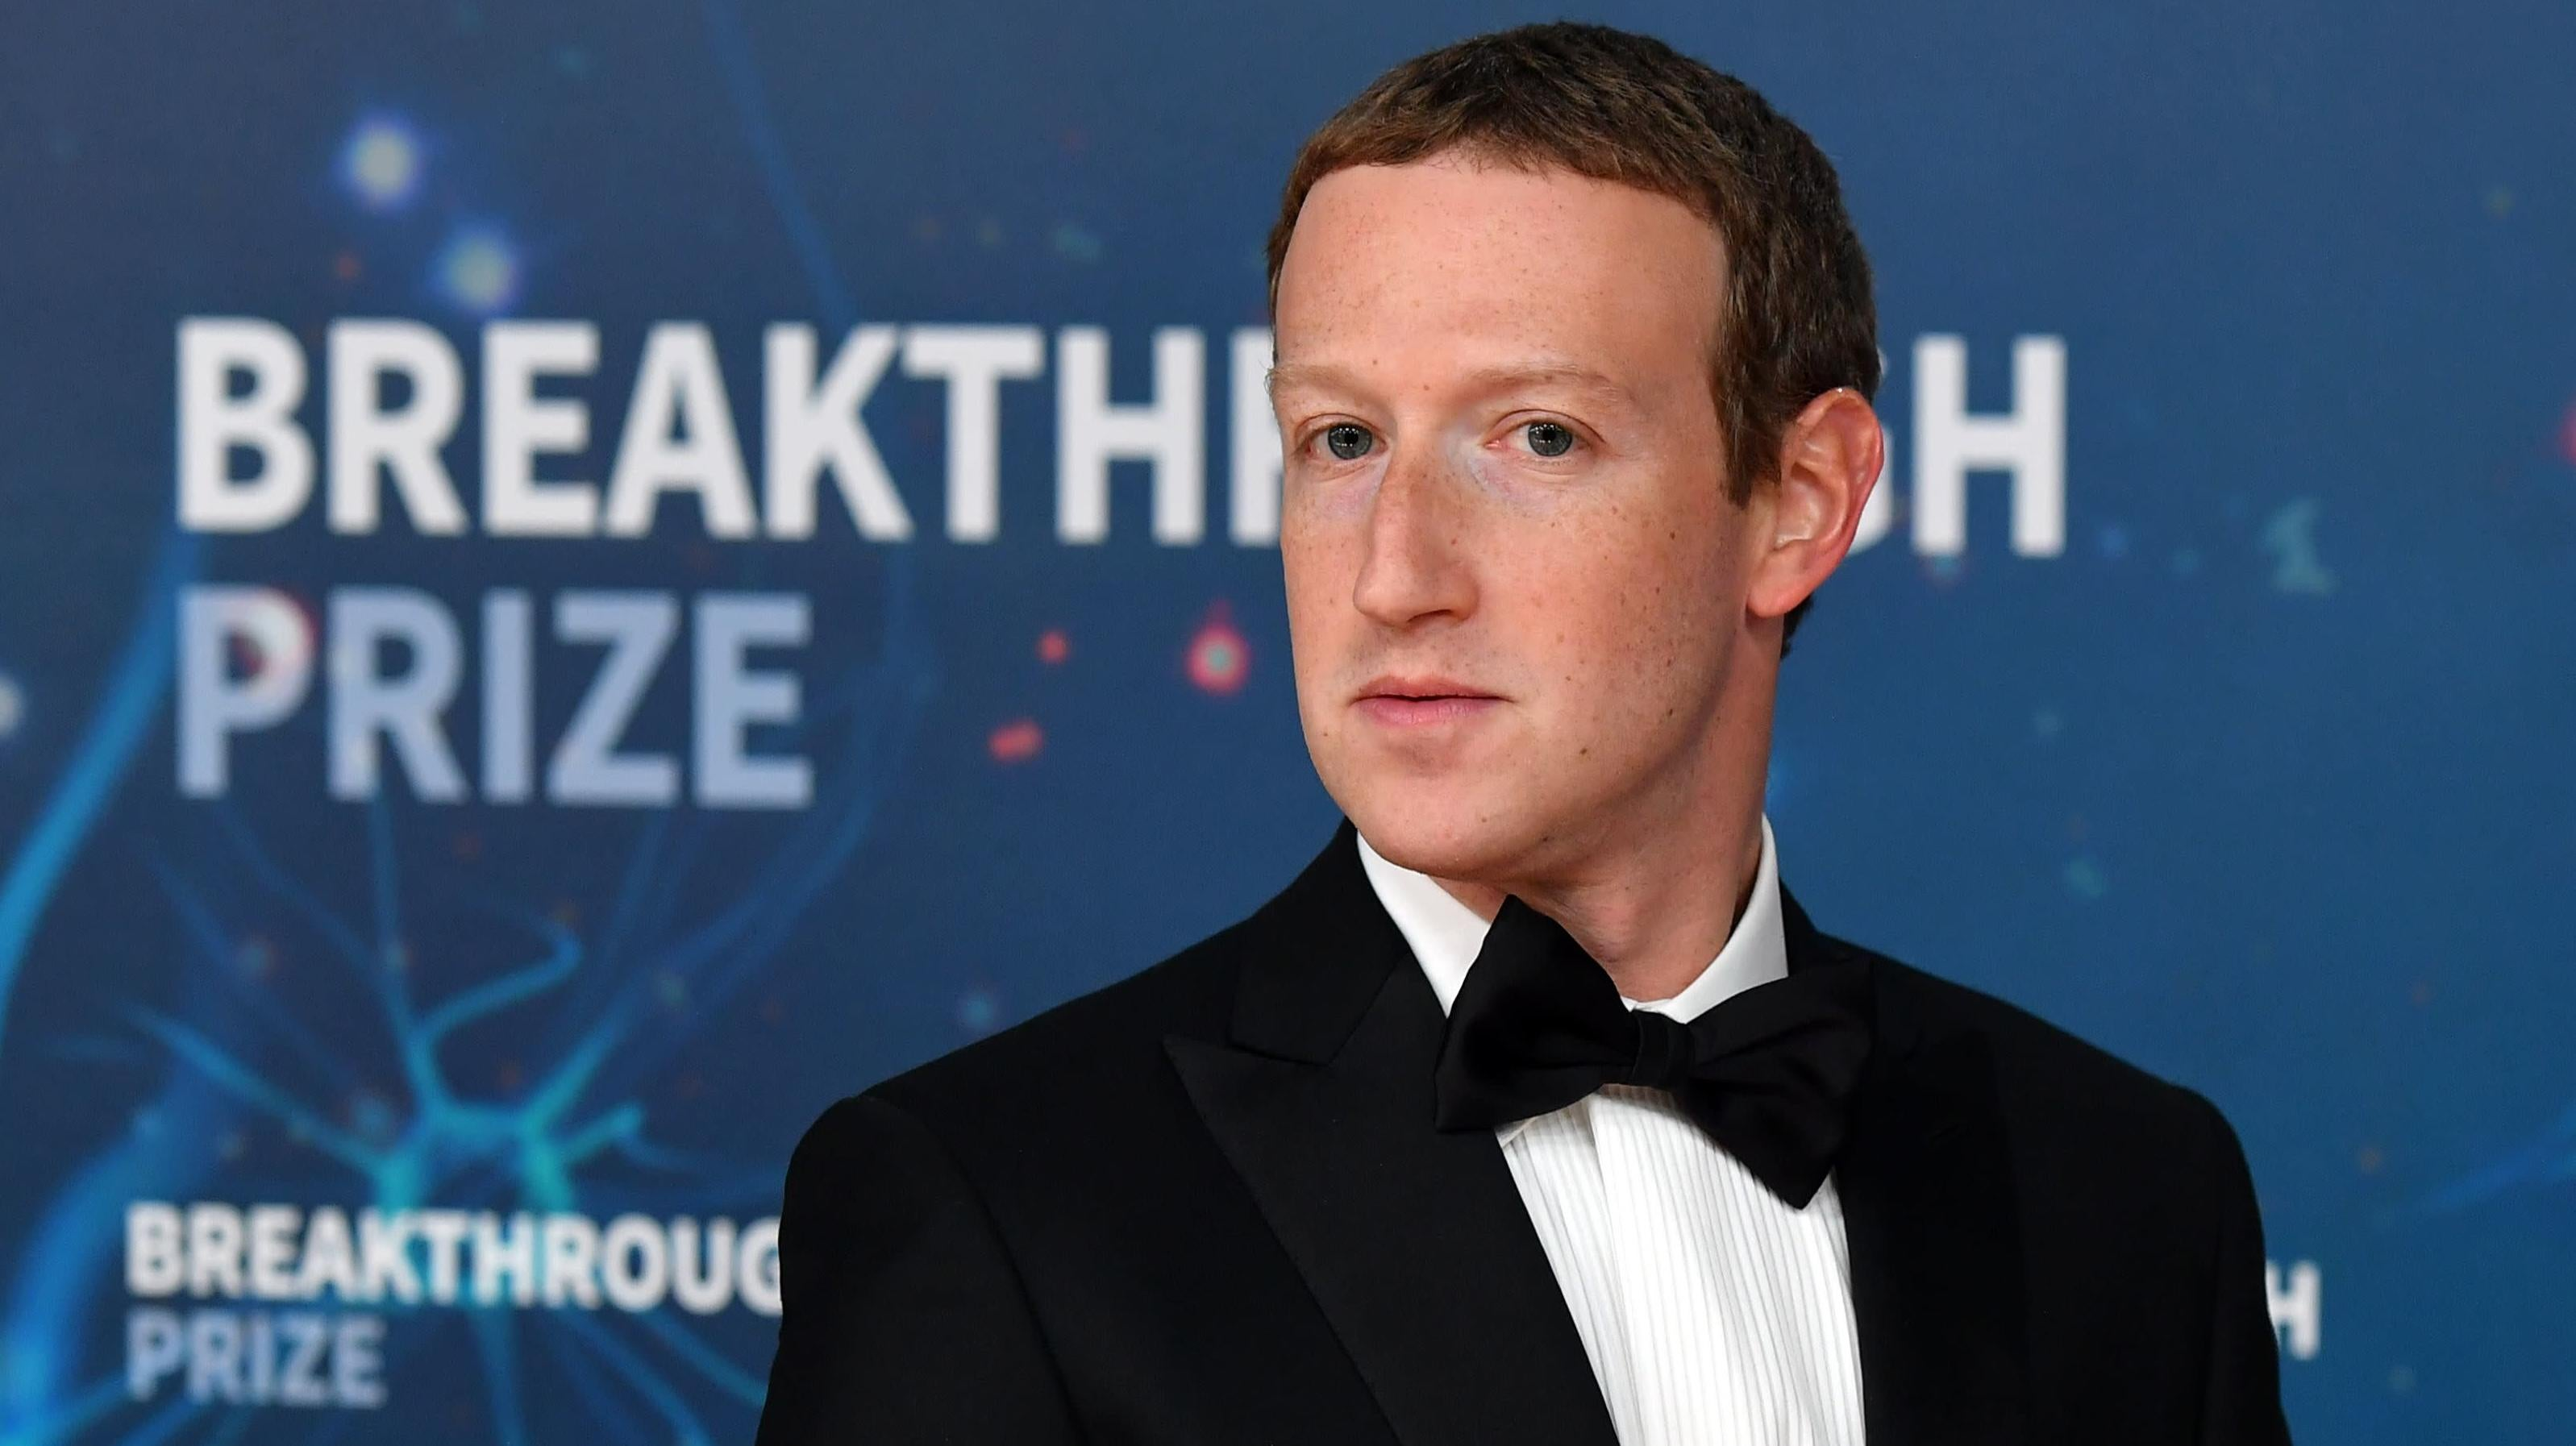 Report: U.S. Considering Steps To Block Facebook From Merging With Instagram And Whatsapp